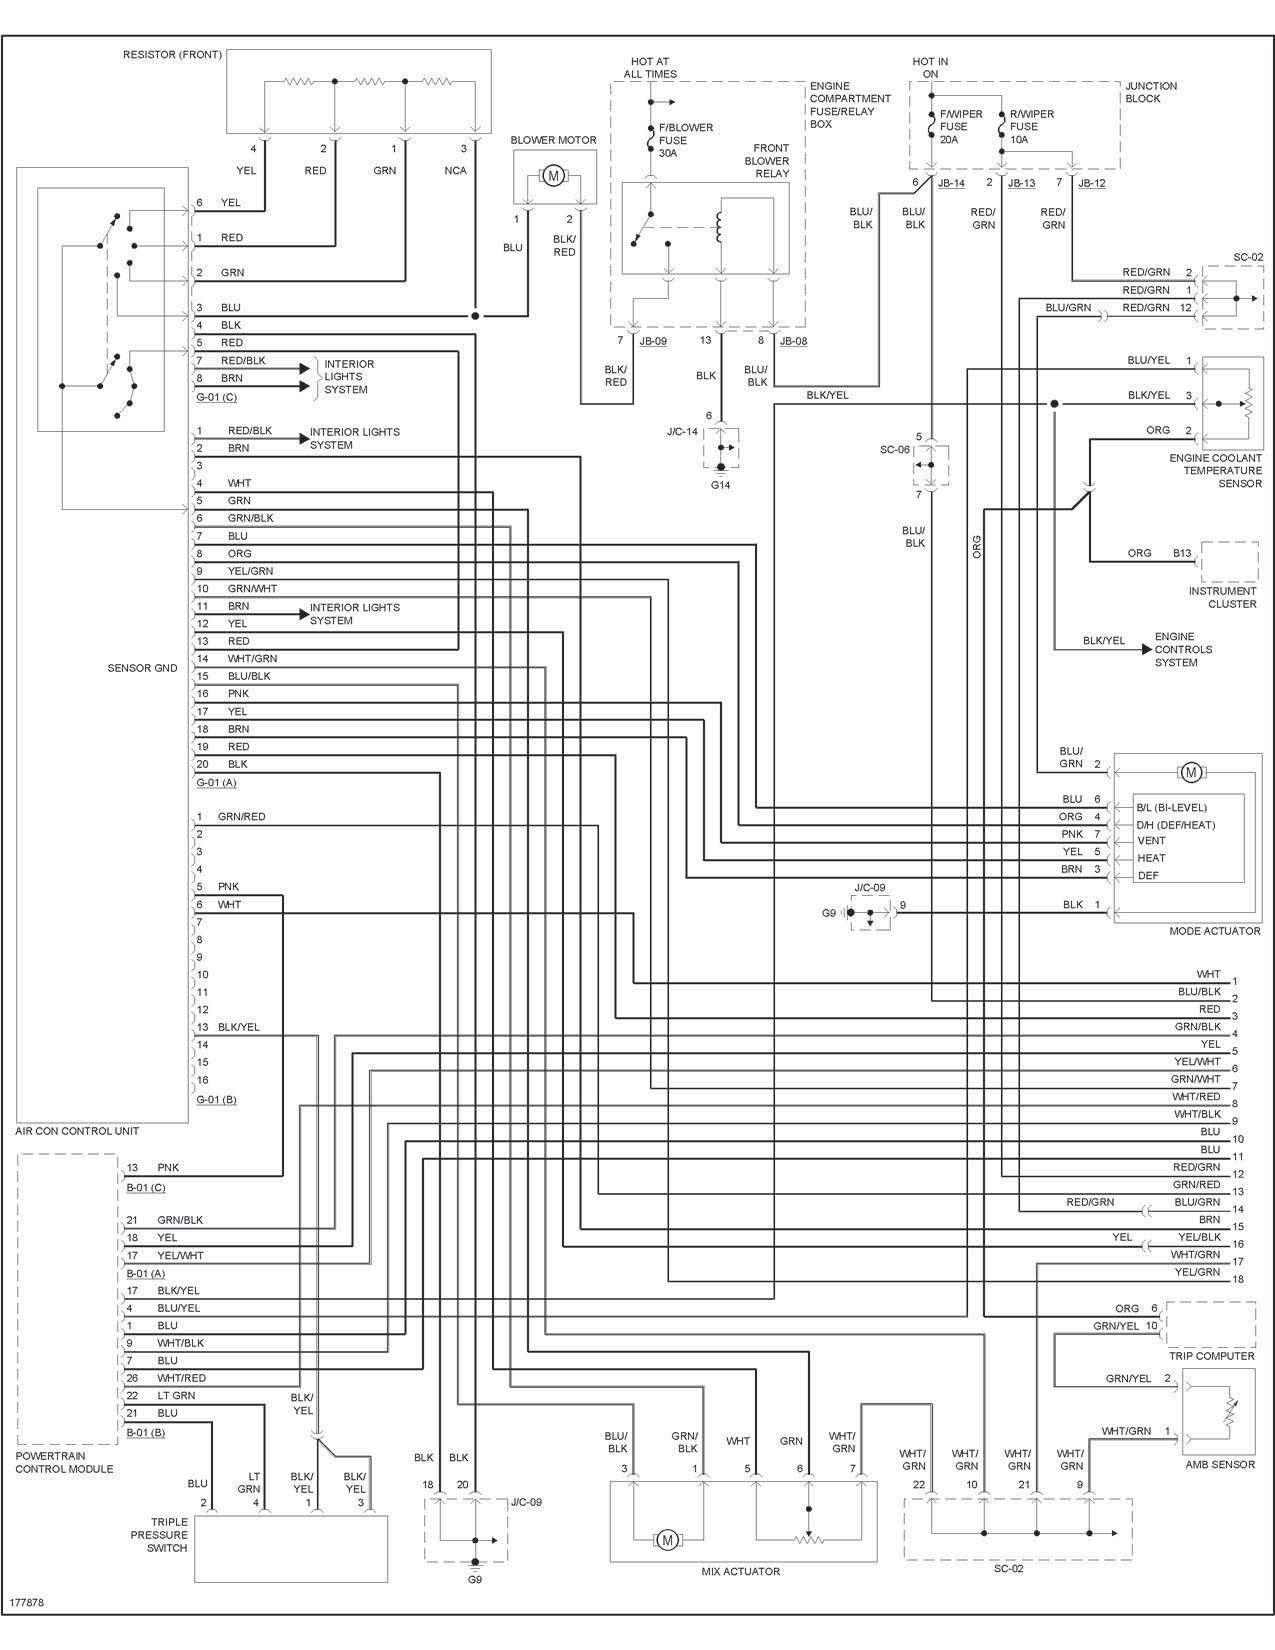 kia sedona wiring diagram pdf free Collection-Wiring Diagram Kia Sportage 2007 Refrence Kia Sedona Engine Diagram Elegant 08 Mazda 3 Motor Hose 4-m